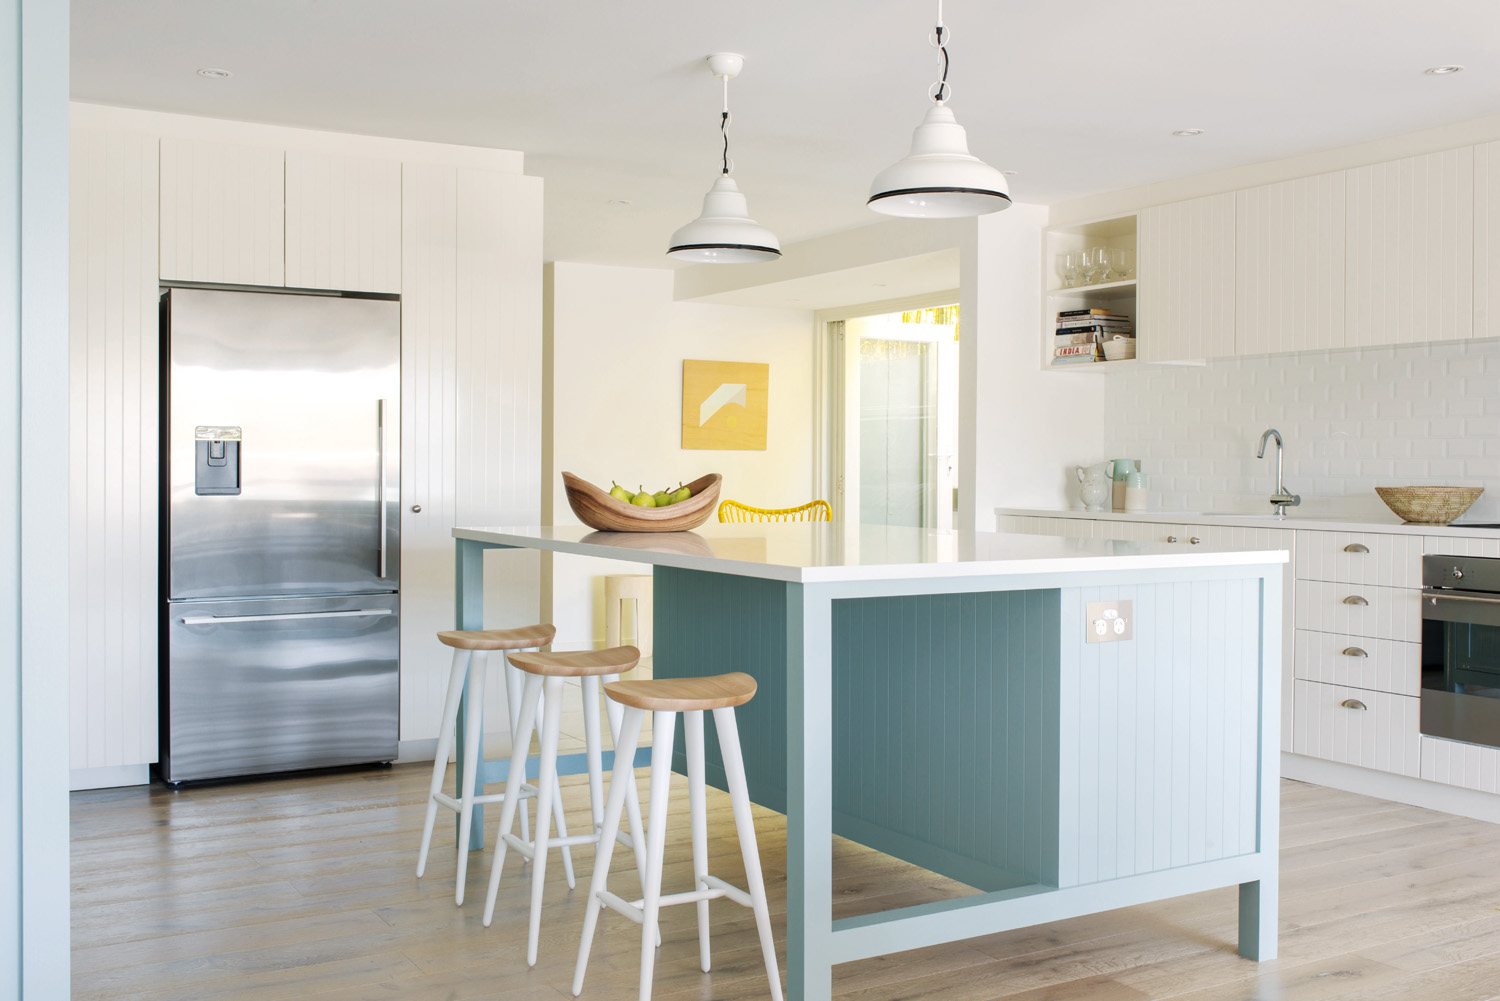 The calming sage colour is the ideal hue for the kitchen